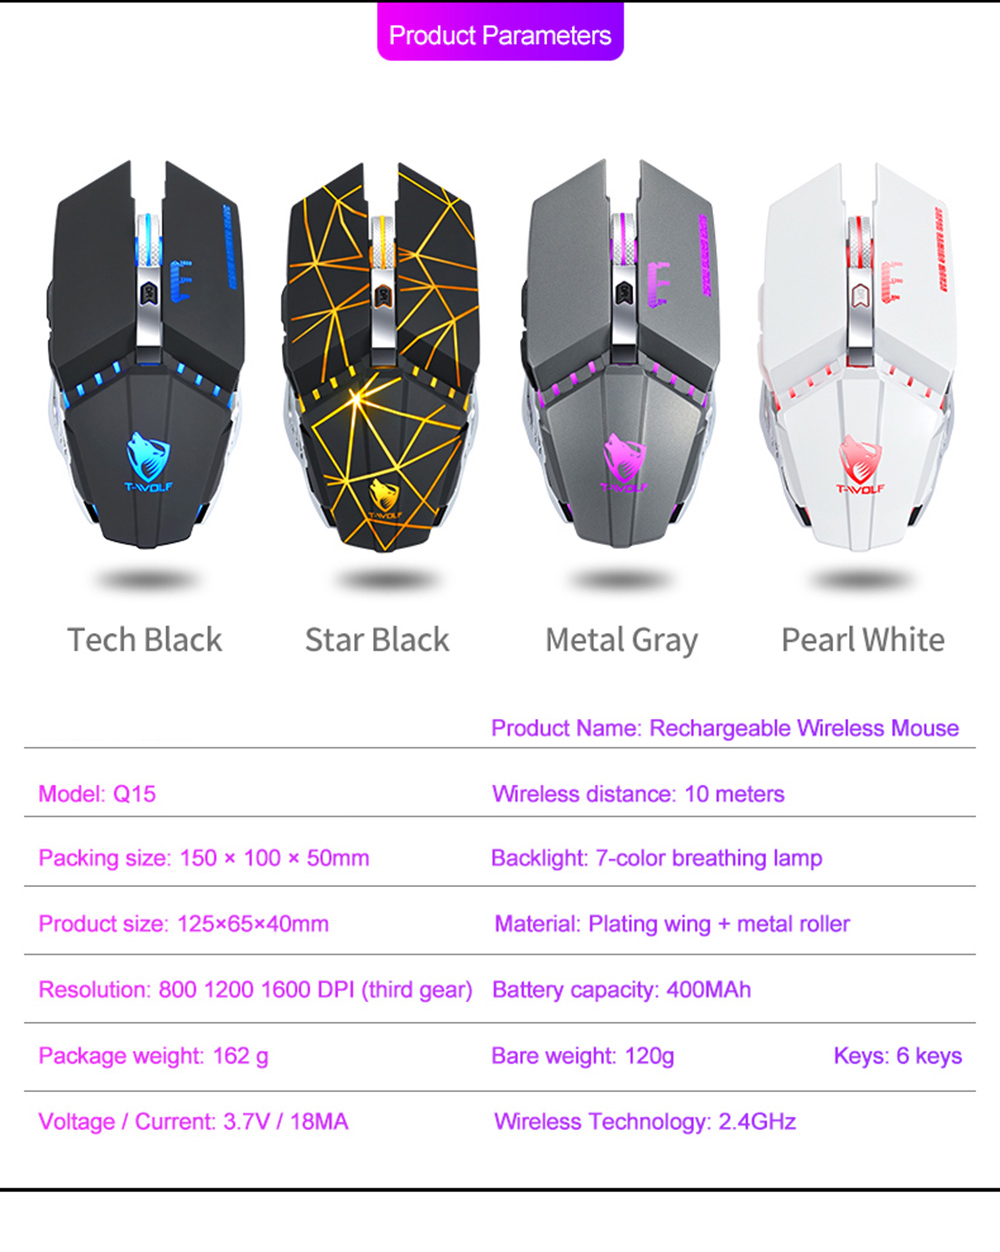 T-wolf Q15 Wireless Gaming Mouse - Silver metal gray